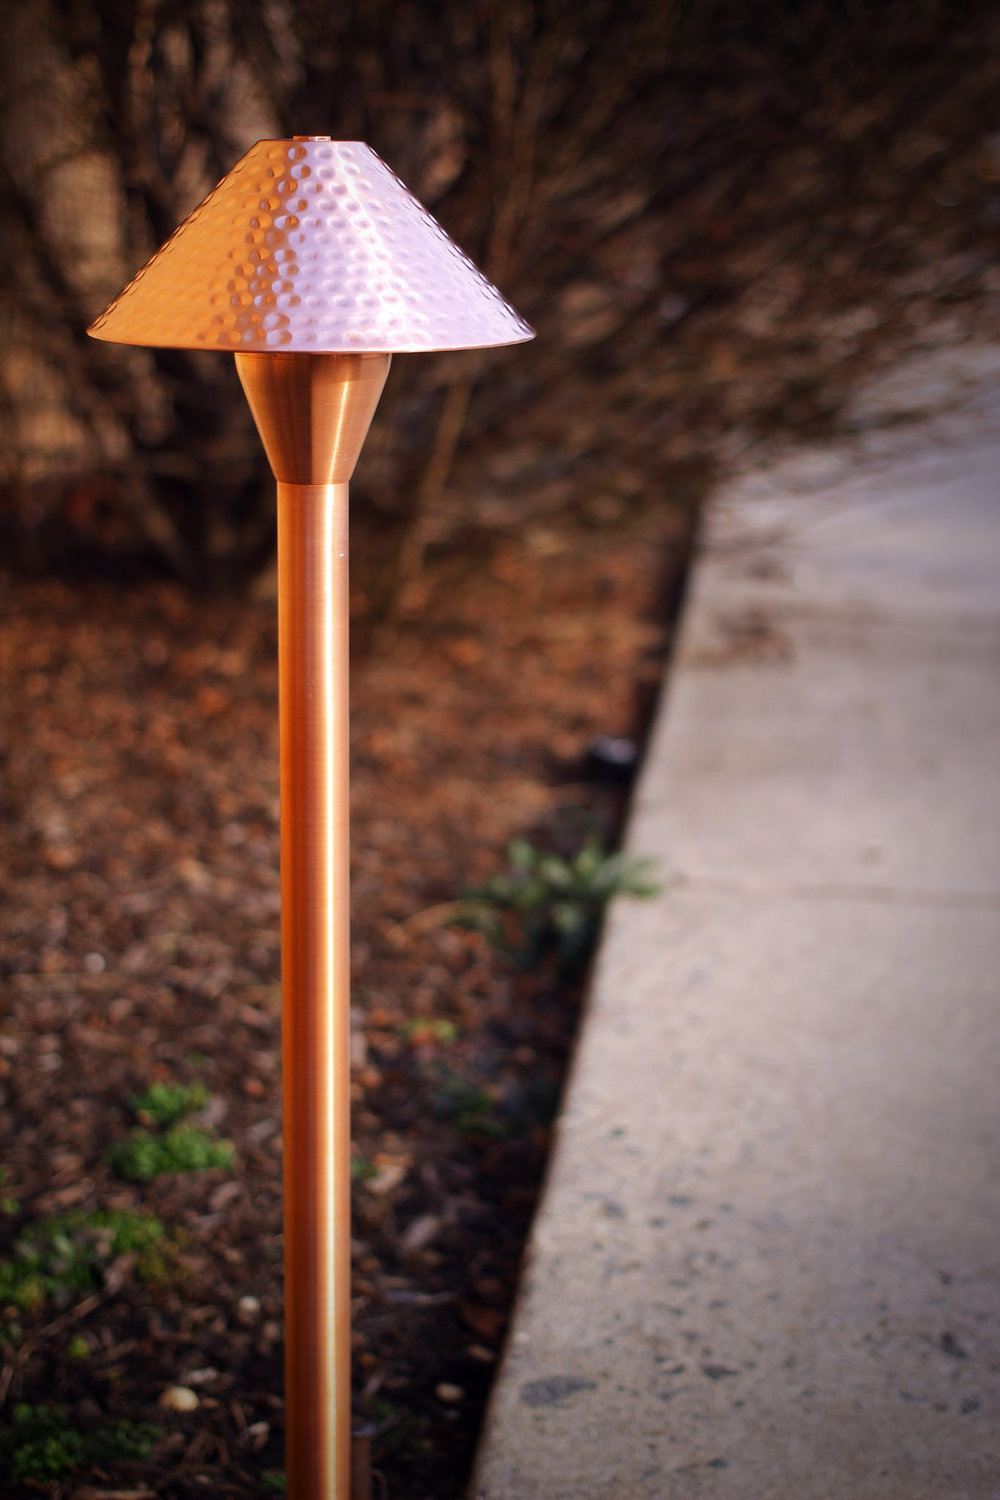 34614173795-coastal-source-hammered-path-light-in-copper.jpg